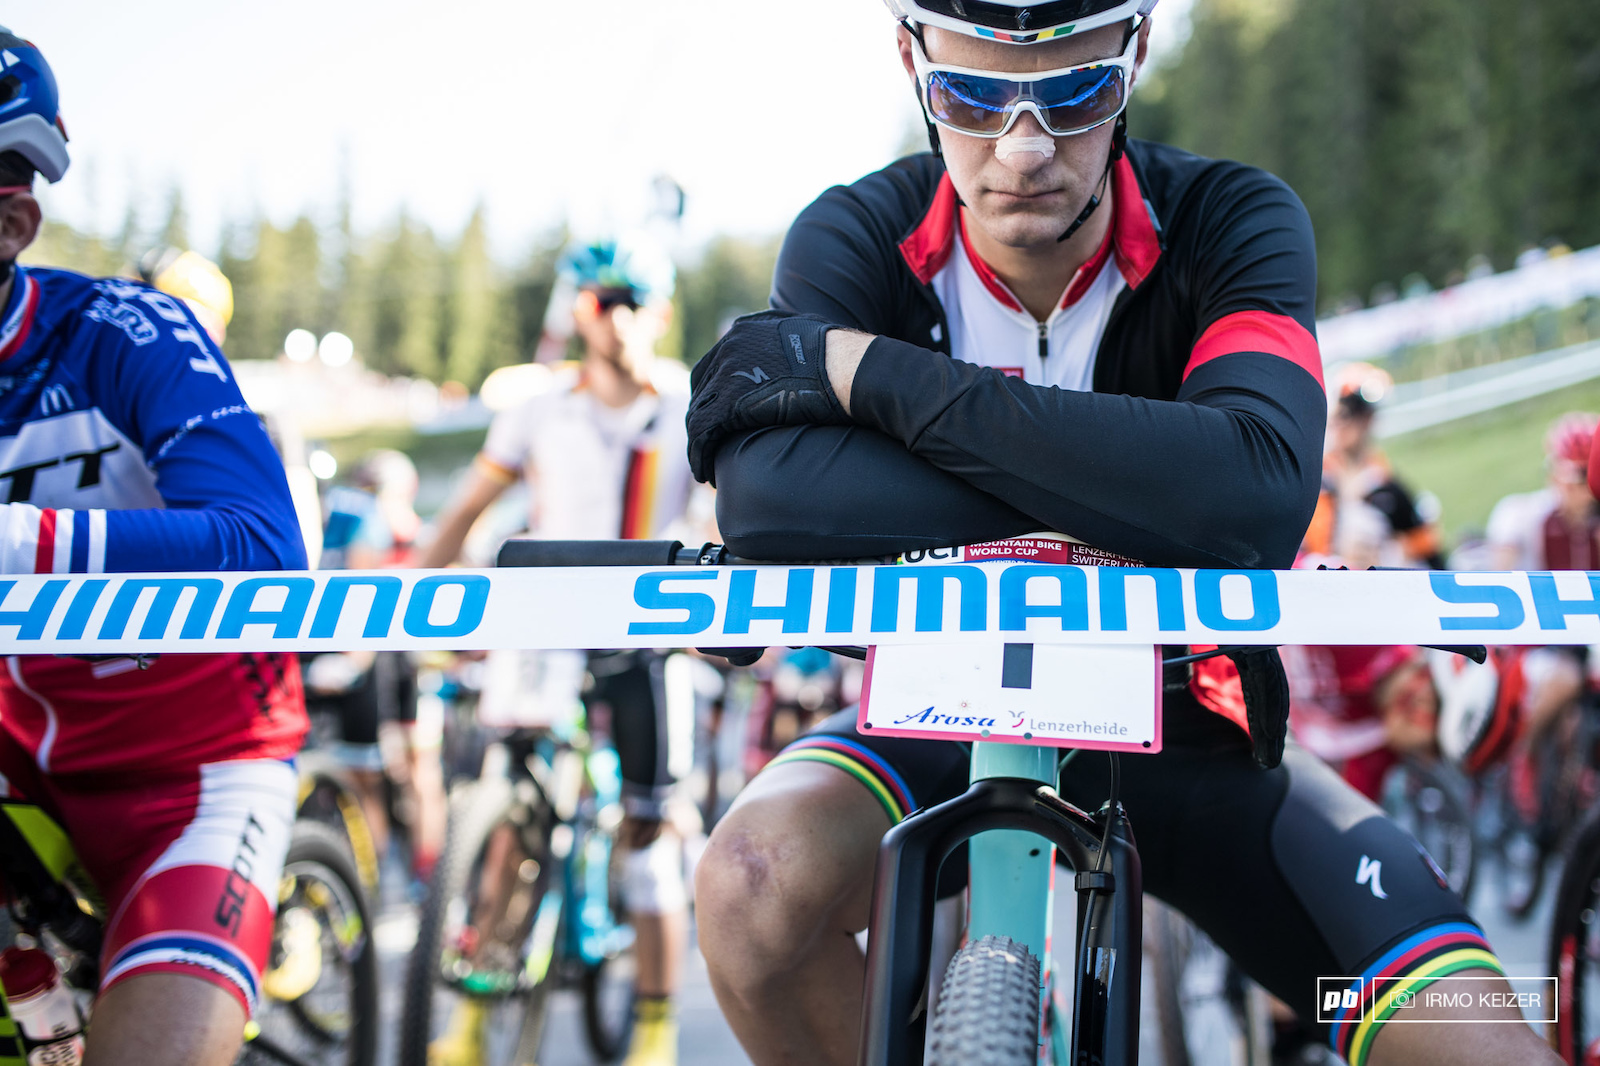 Crowned World Champion a week earlier Sam Gaze rocks the rainbow stripes in Lenzerheide.